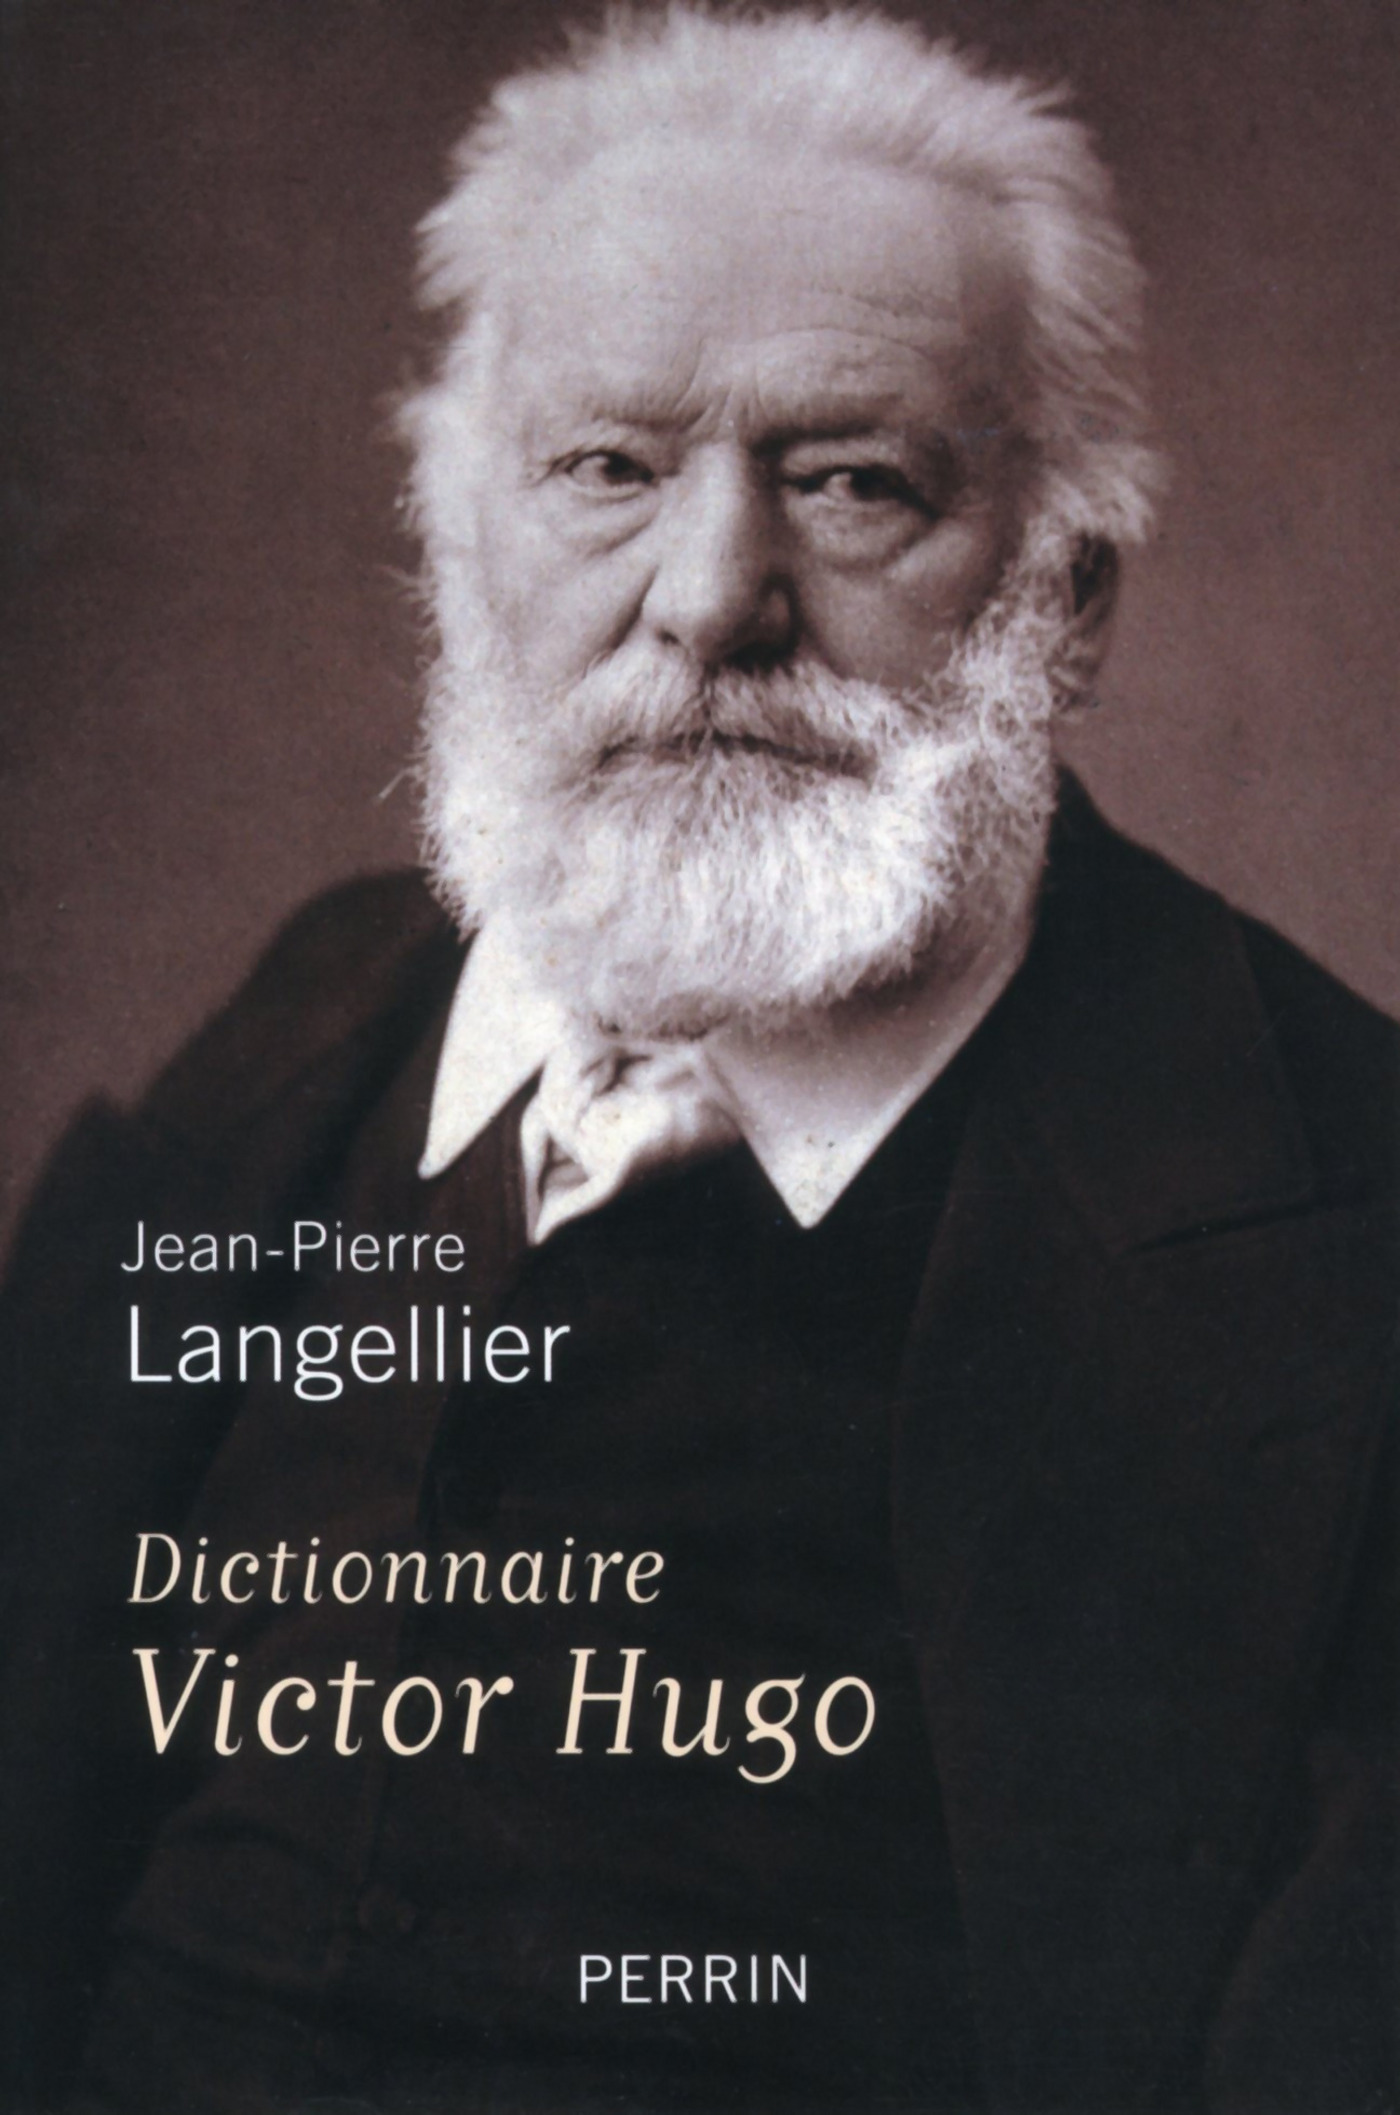 Dictionnaire Victor Hugo